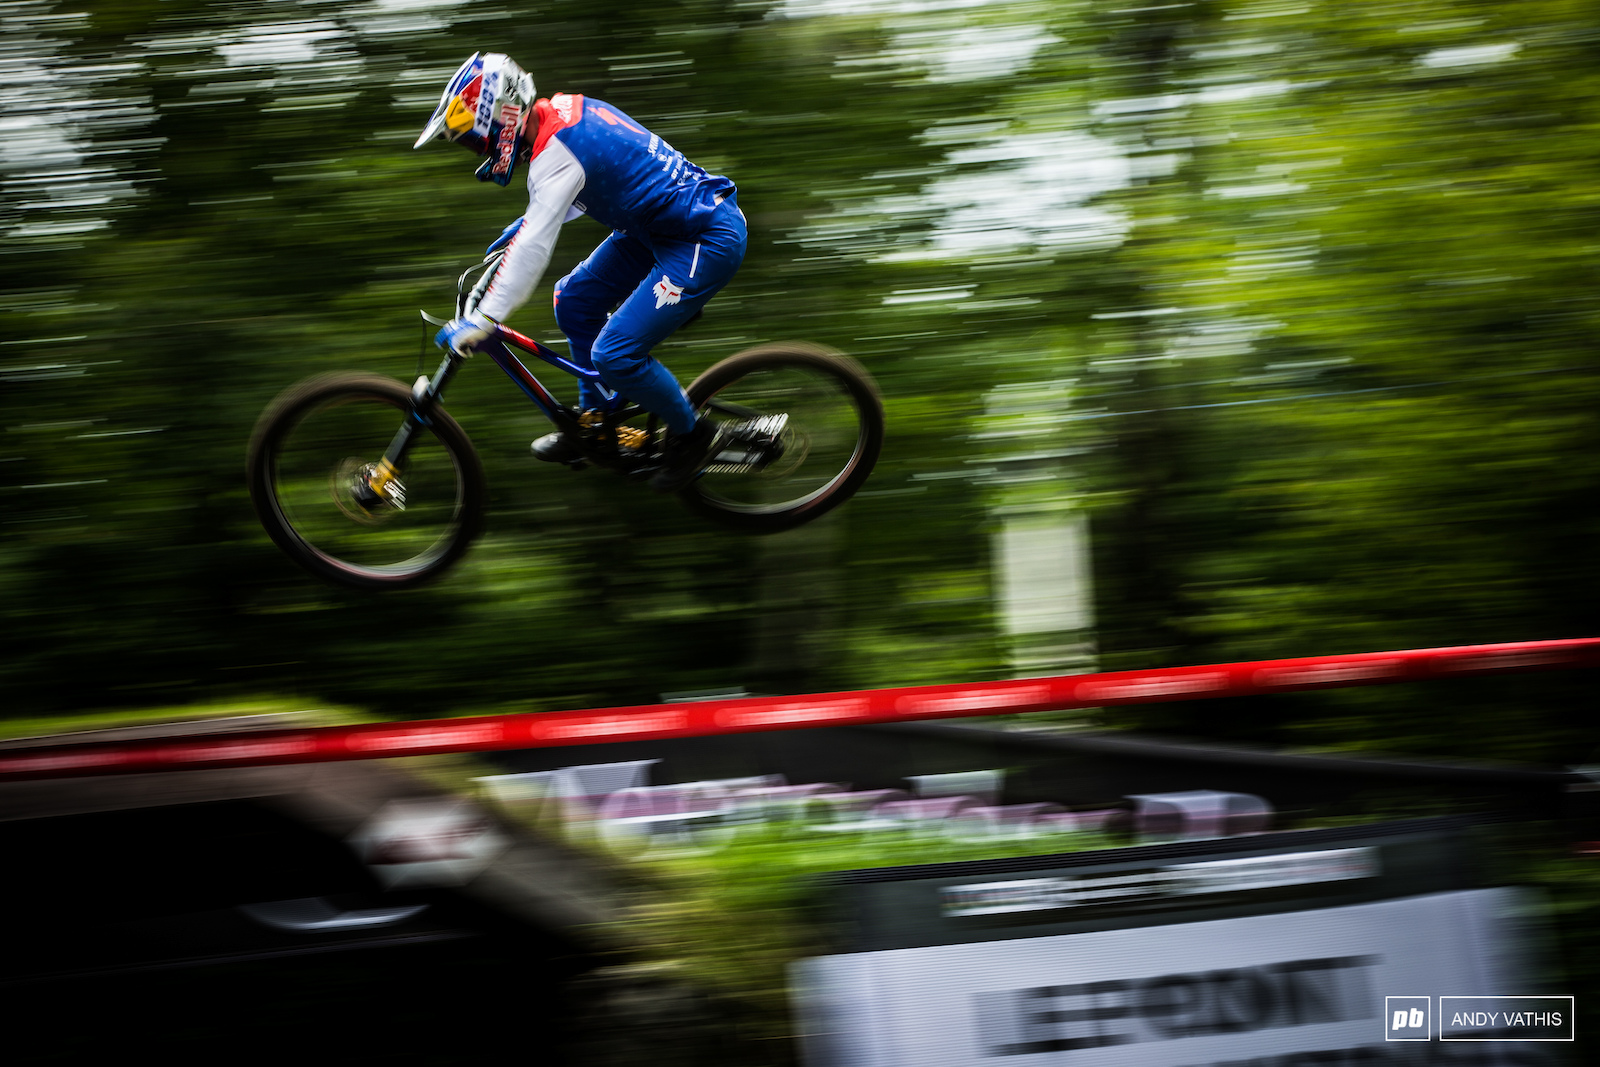 Loic Blueni hovering over the XC course.